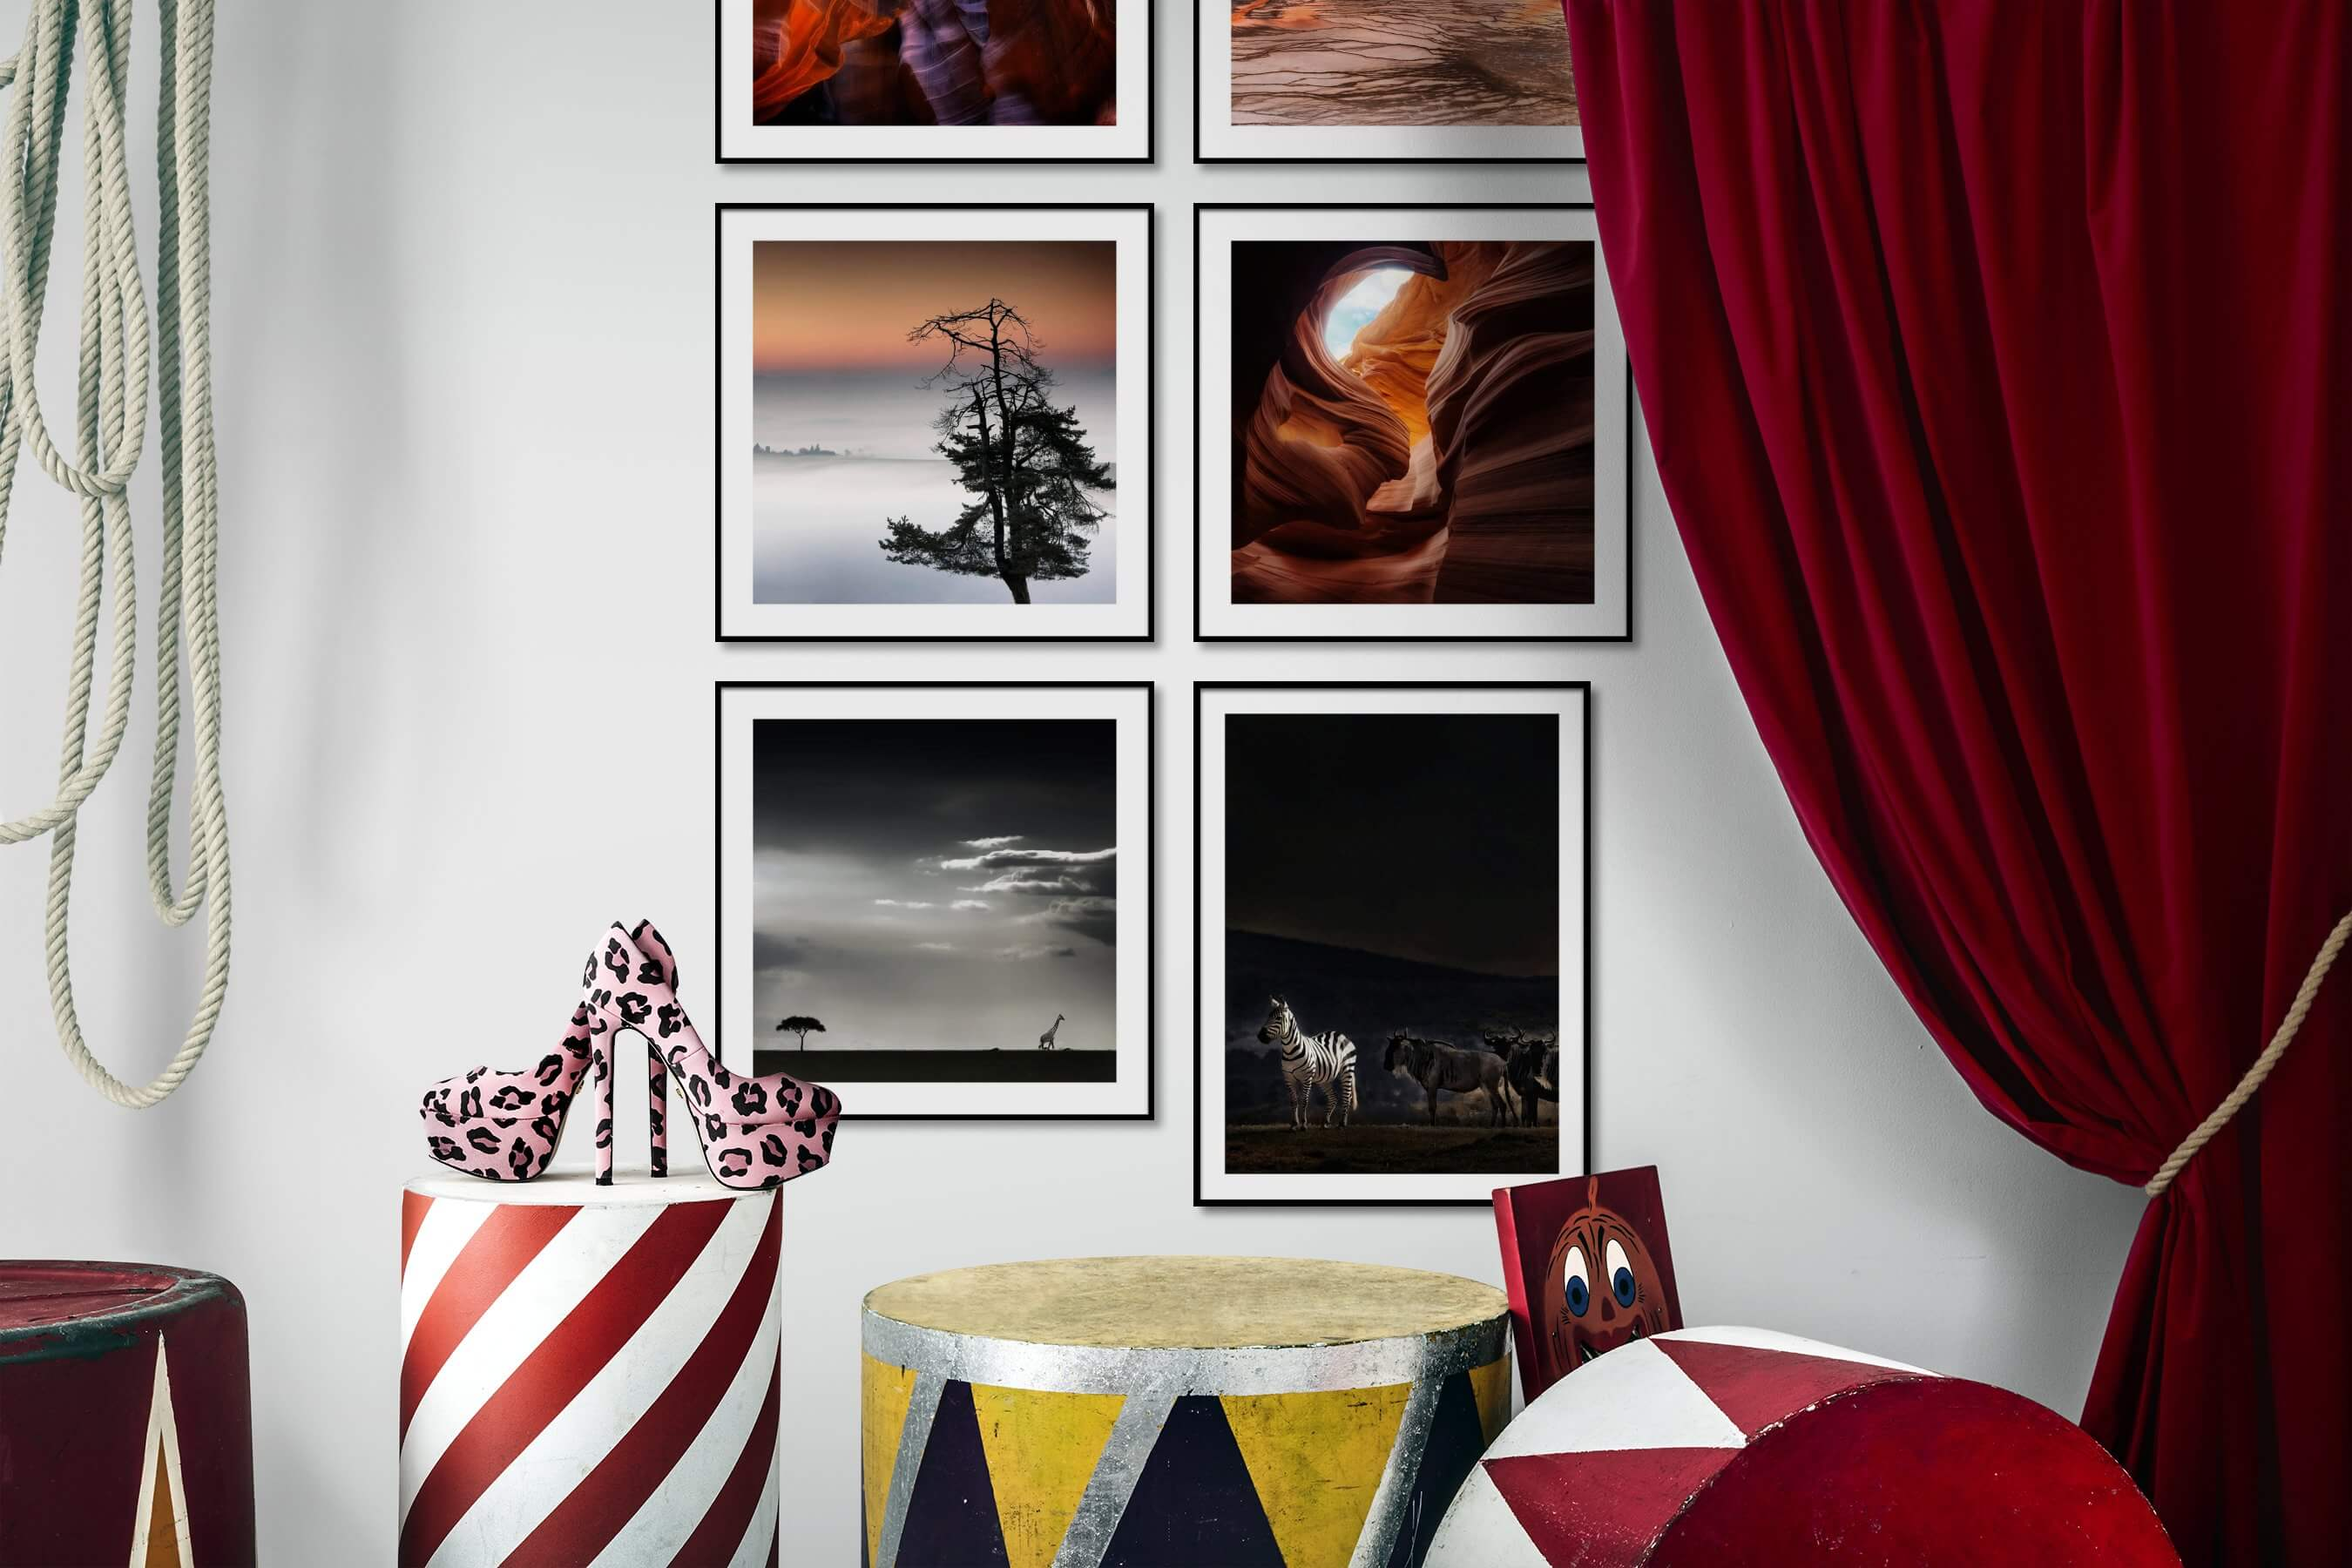 Gallery wall idea with six framed pictures arranged on a wall depicting For the Maximalist, Nature, For the Moderate, and Animals